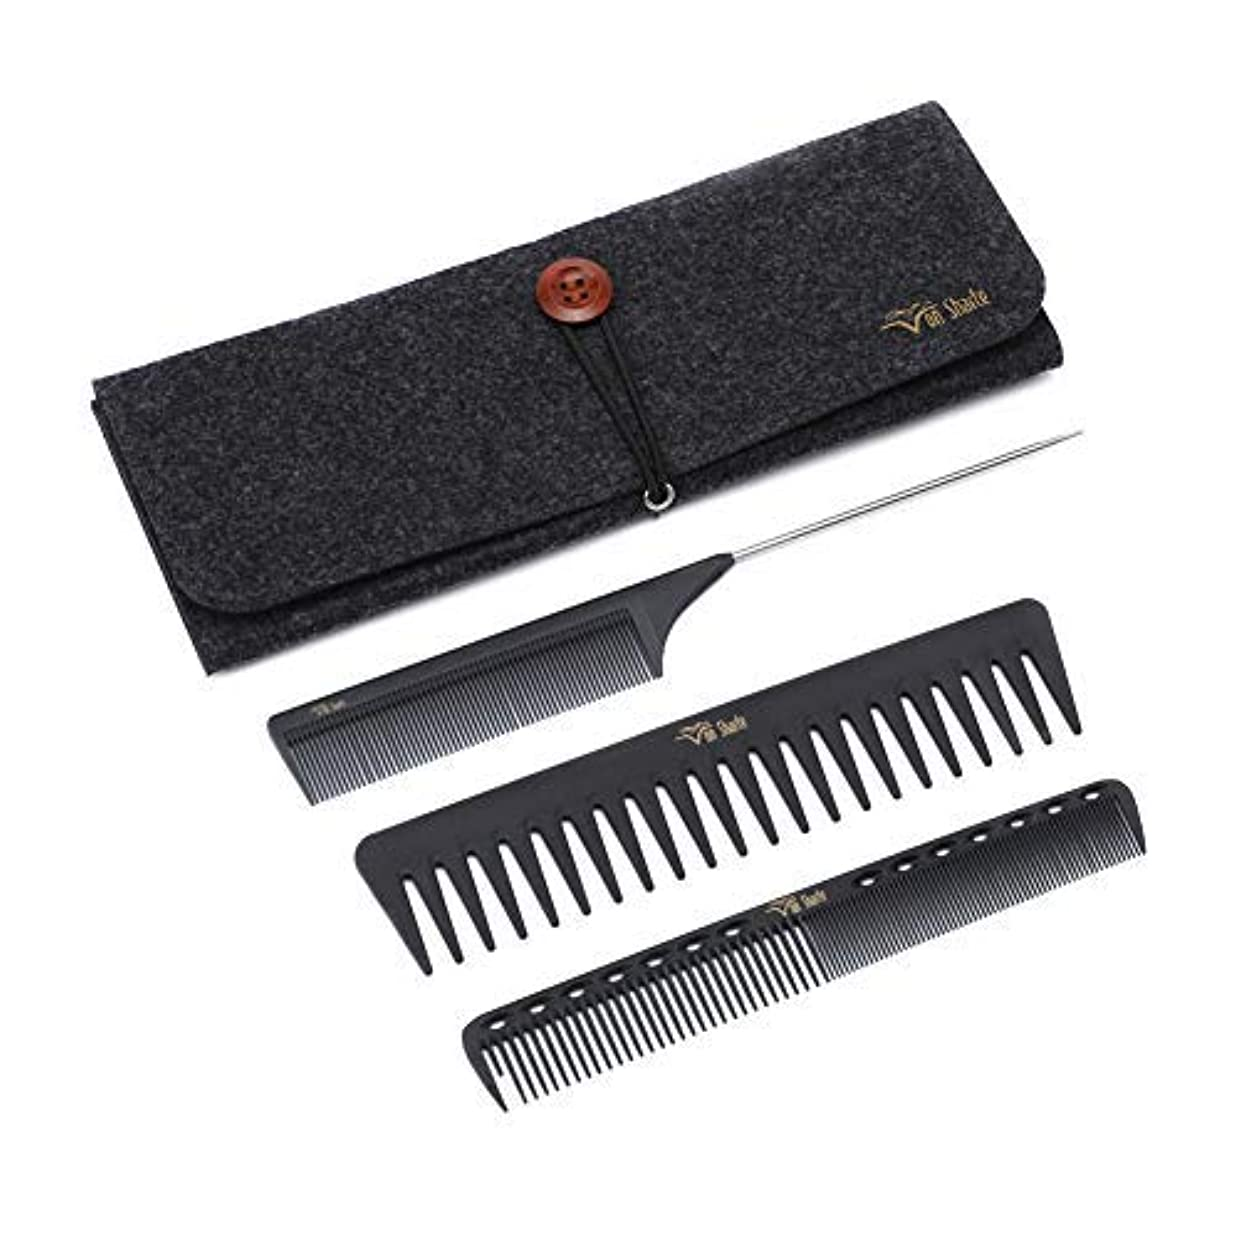 Styling Comb Set,Hairdresser Barber Comb Cutting Hair Comb Carbon Fiber Wide Tooth Comb Metal Rat Pin Tail Comb...